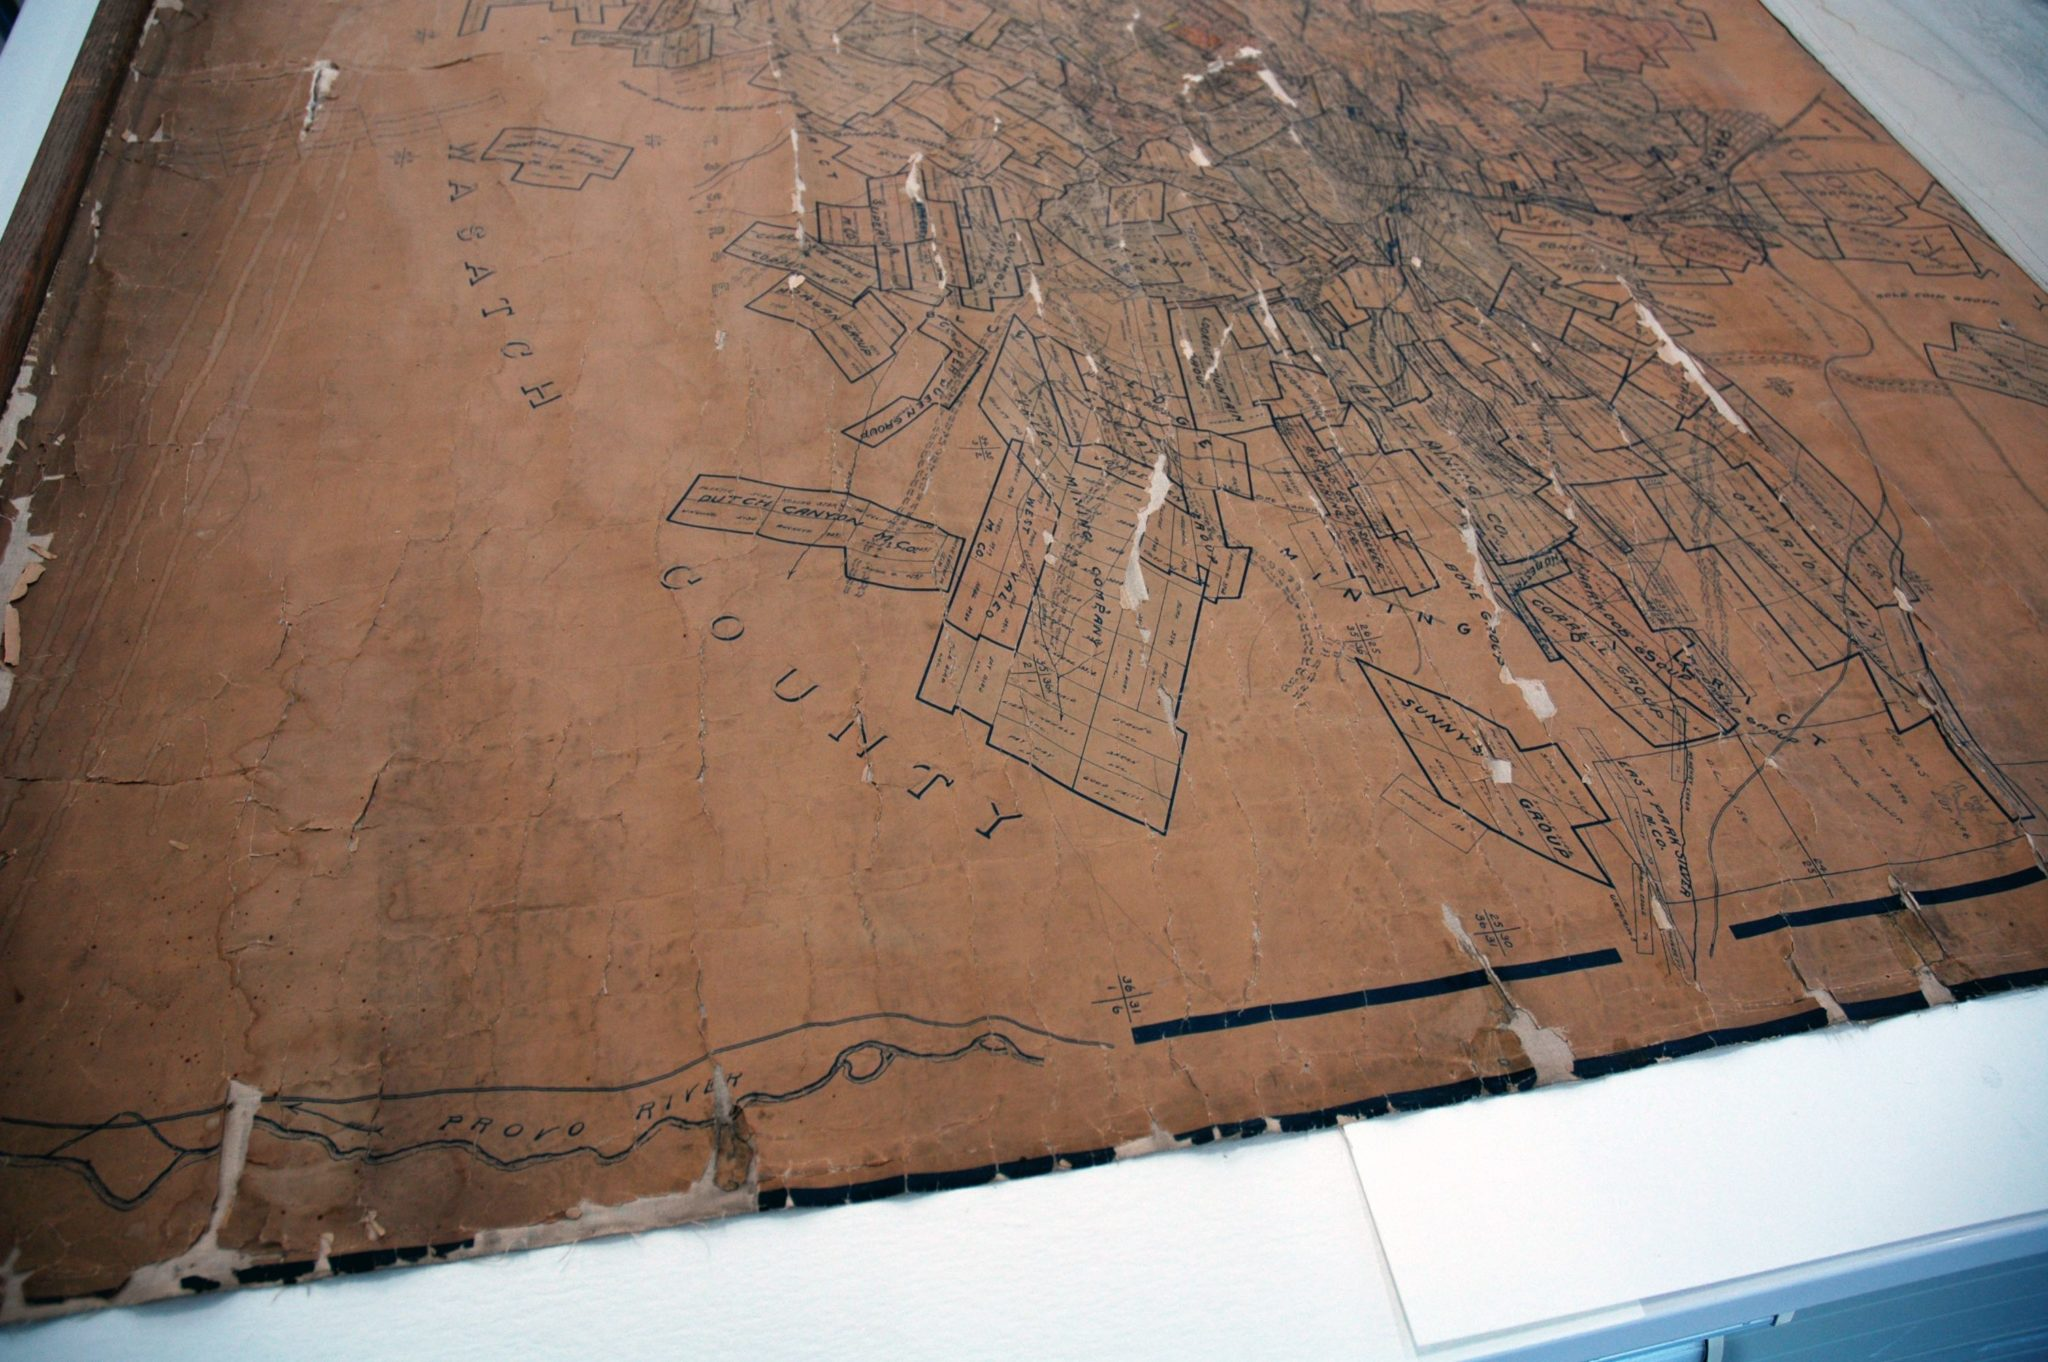 More losses, fragmentation, stains, and discoloration can be seen at the extremely deteriorated right half of the map.